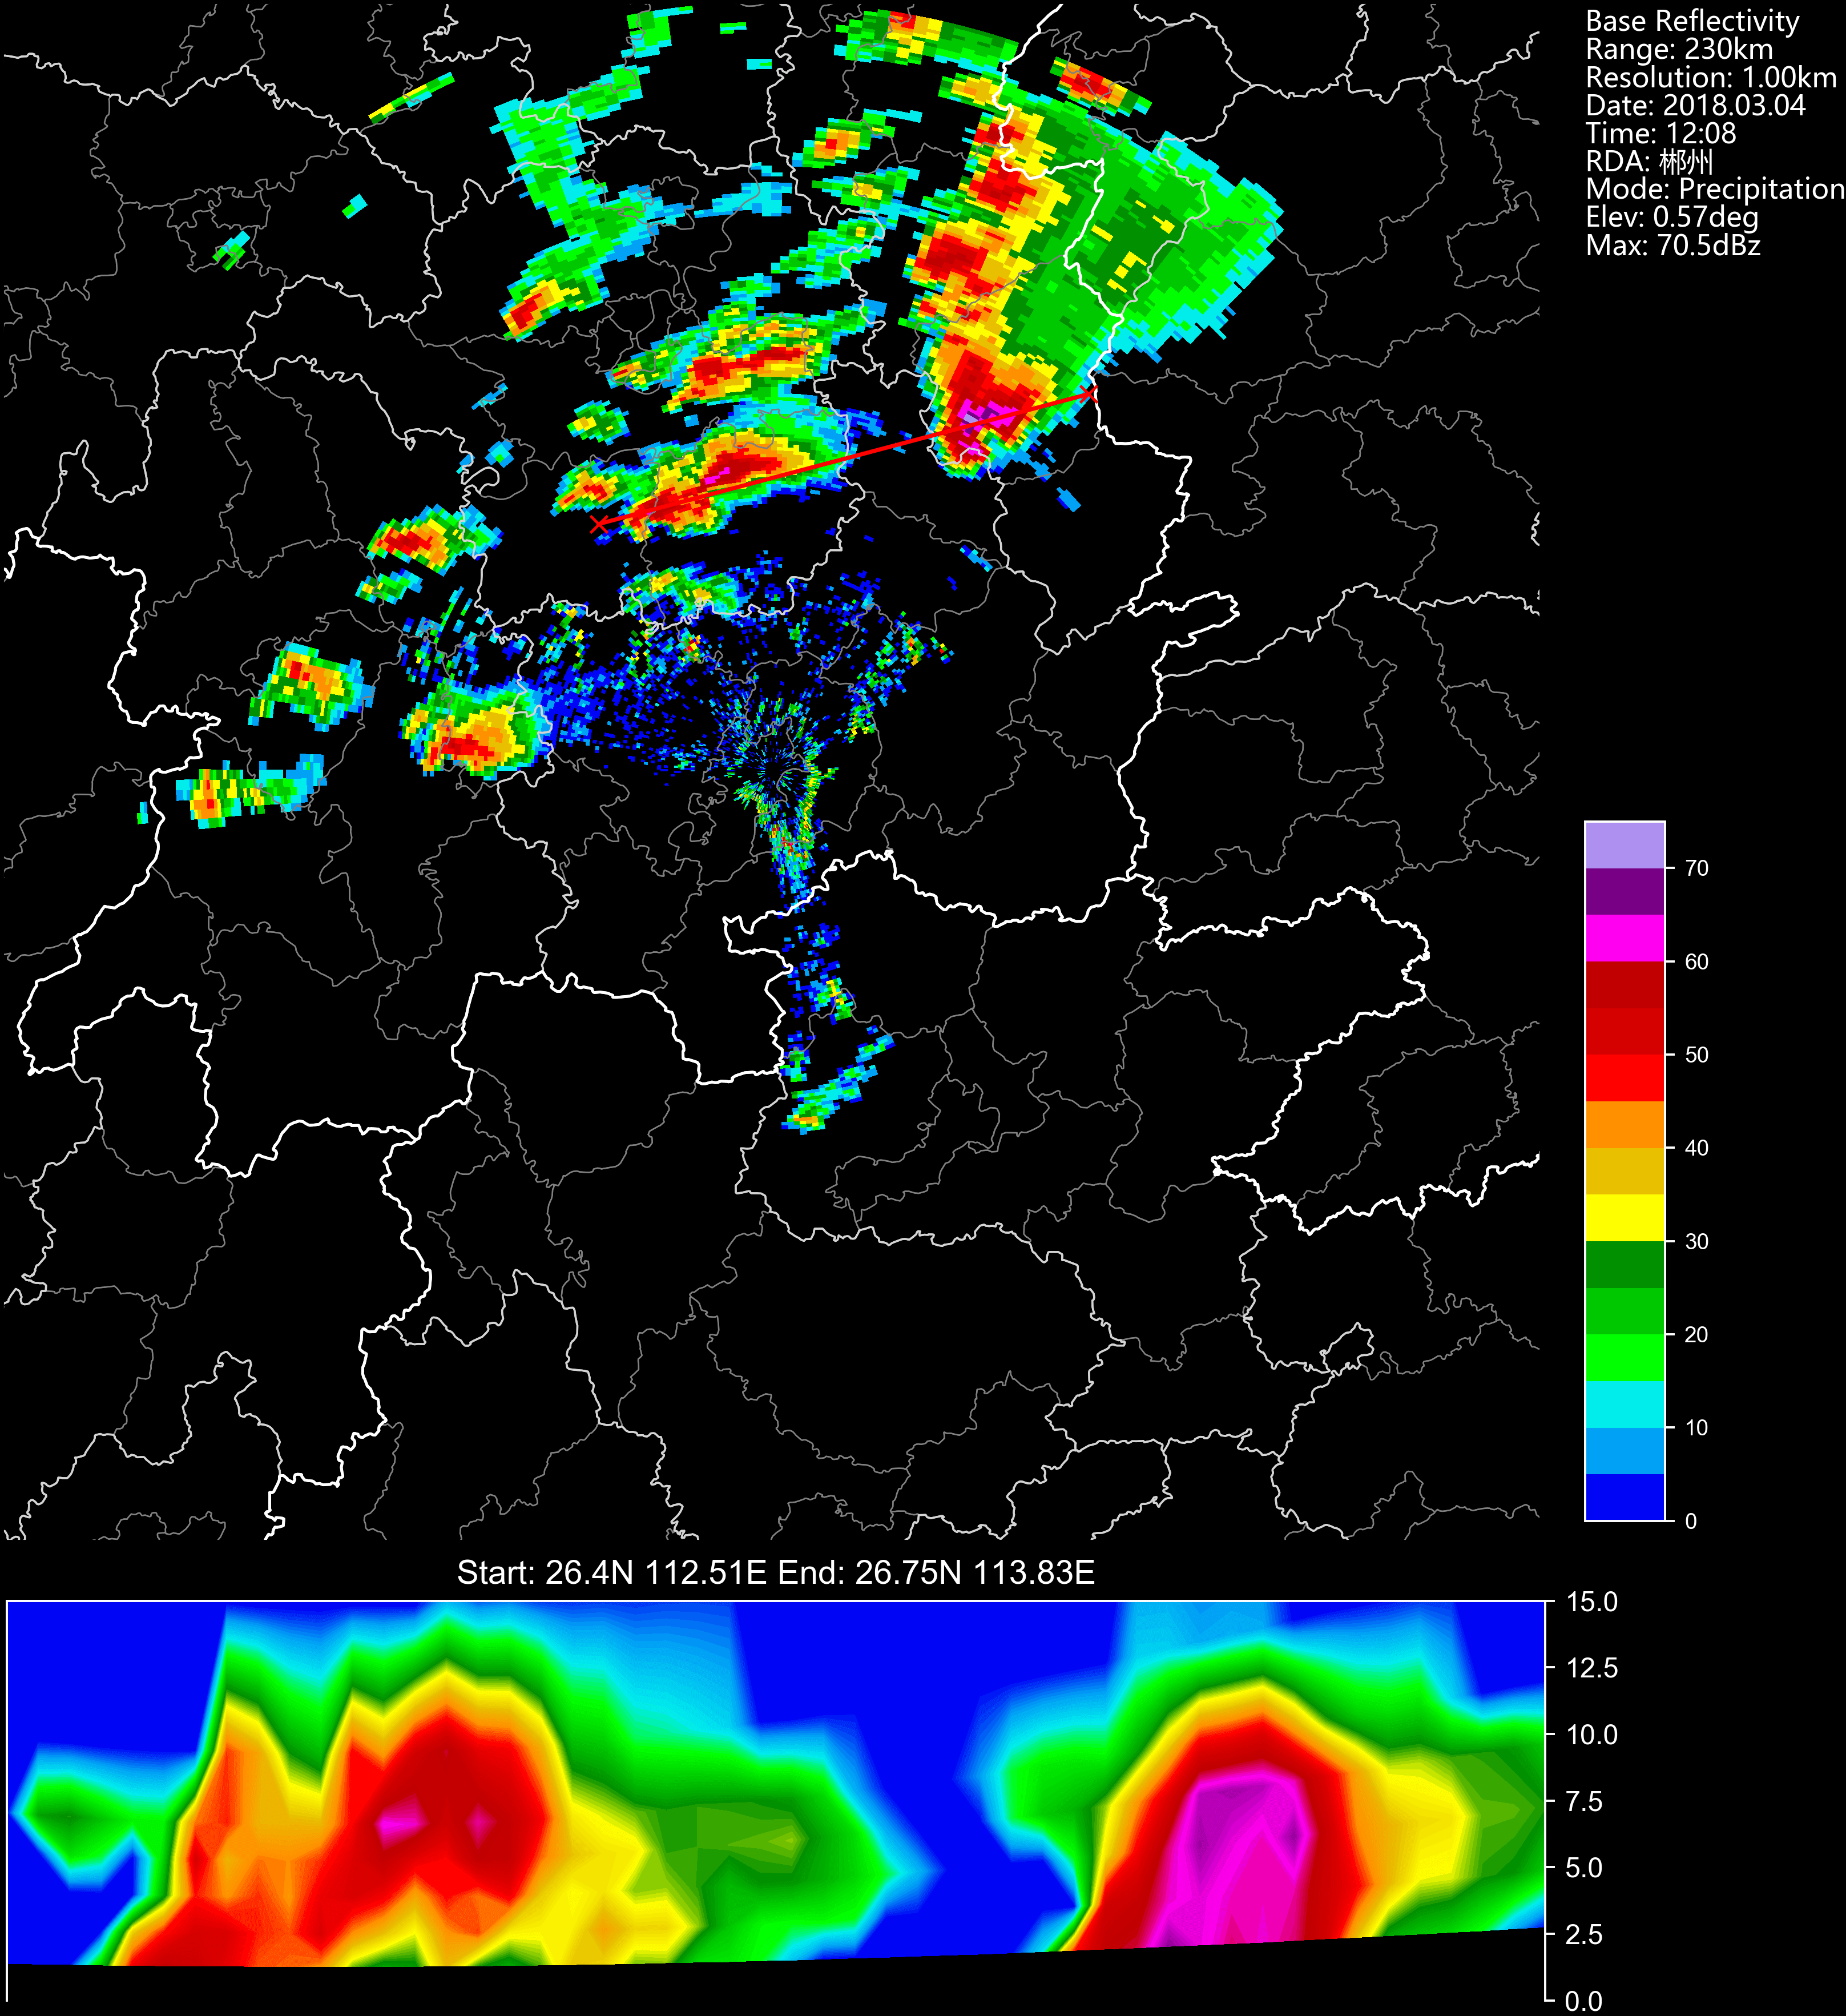 PPI reflectivity combined with cross-section